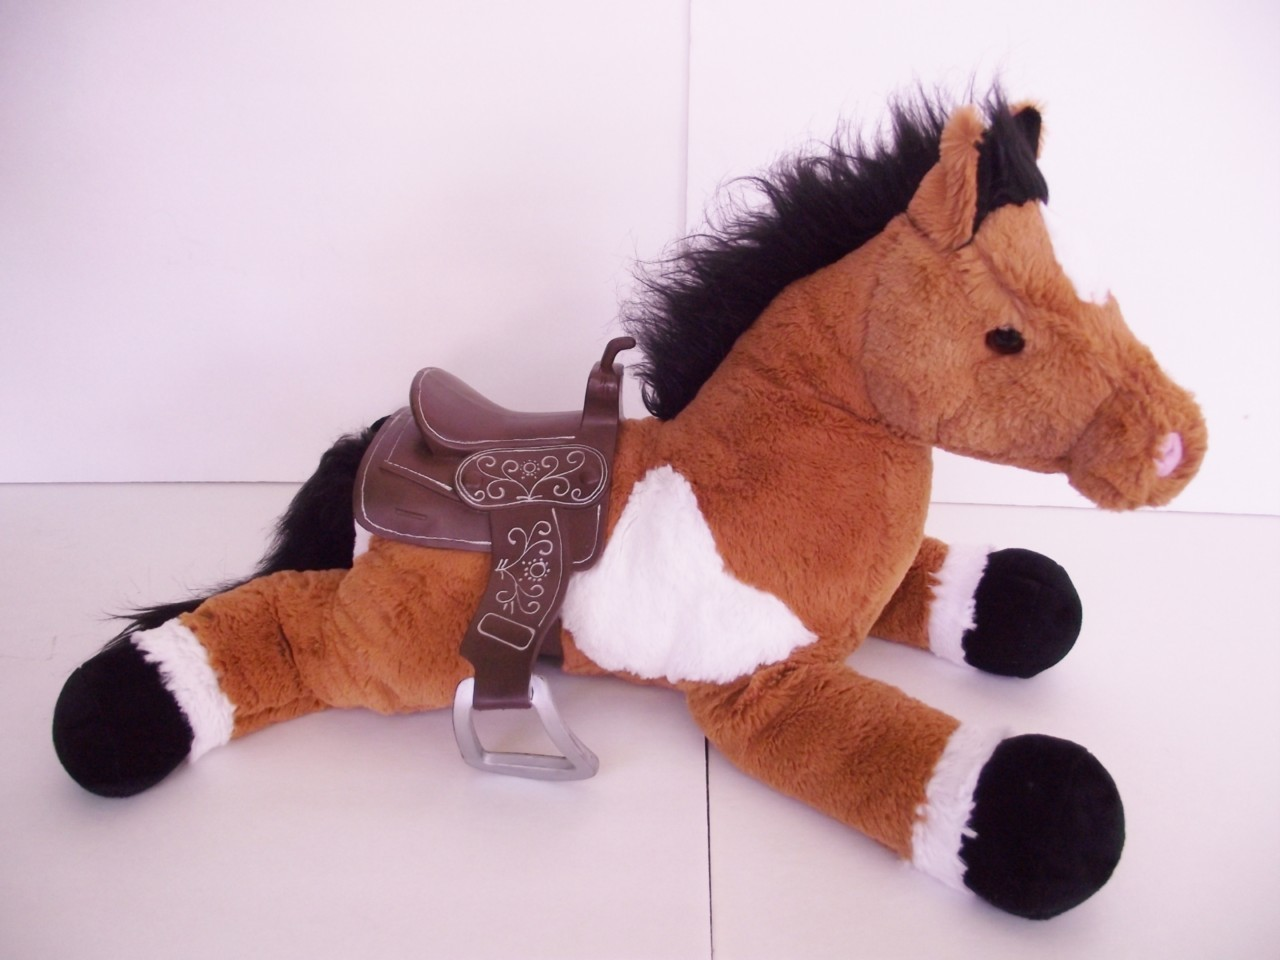 brown and white horse with black hooves